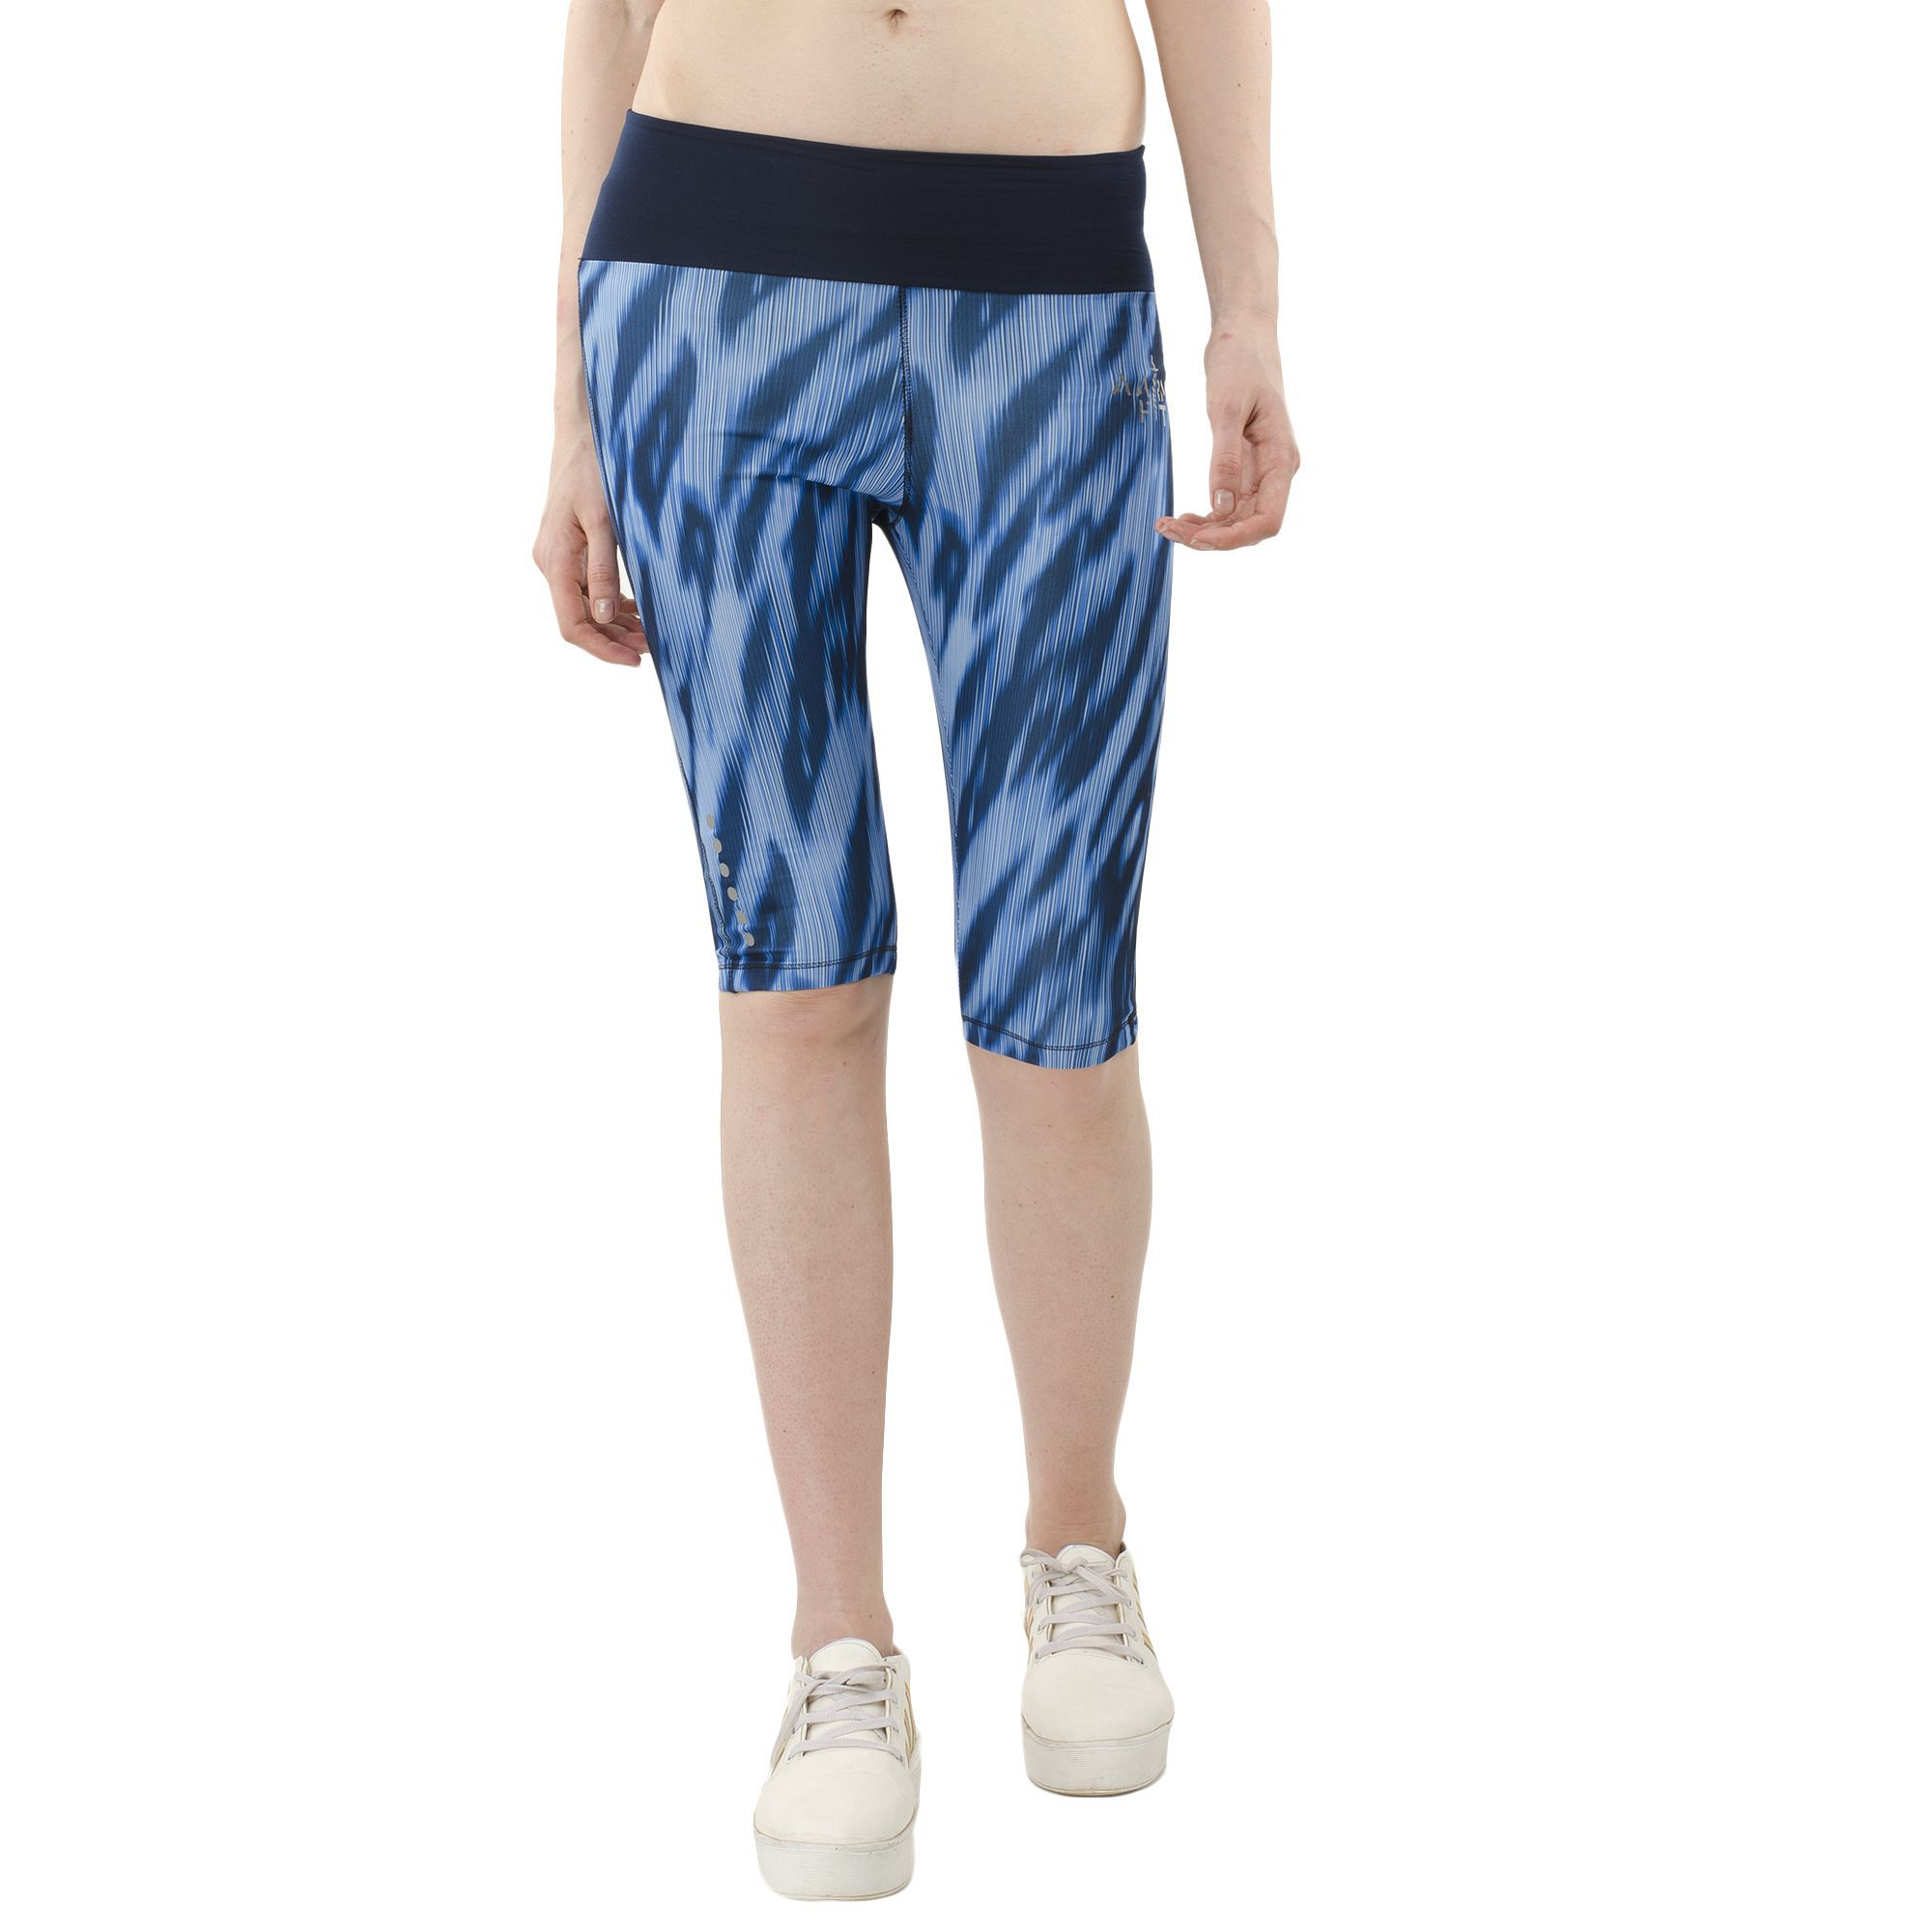 aarmy fit Polyester Blend Tights - Navy